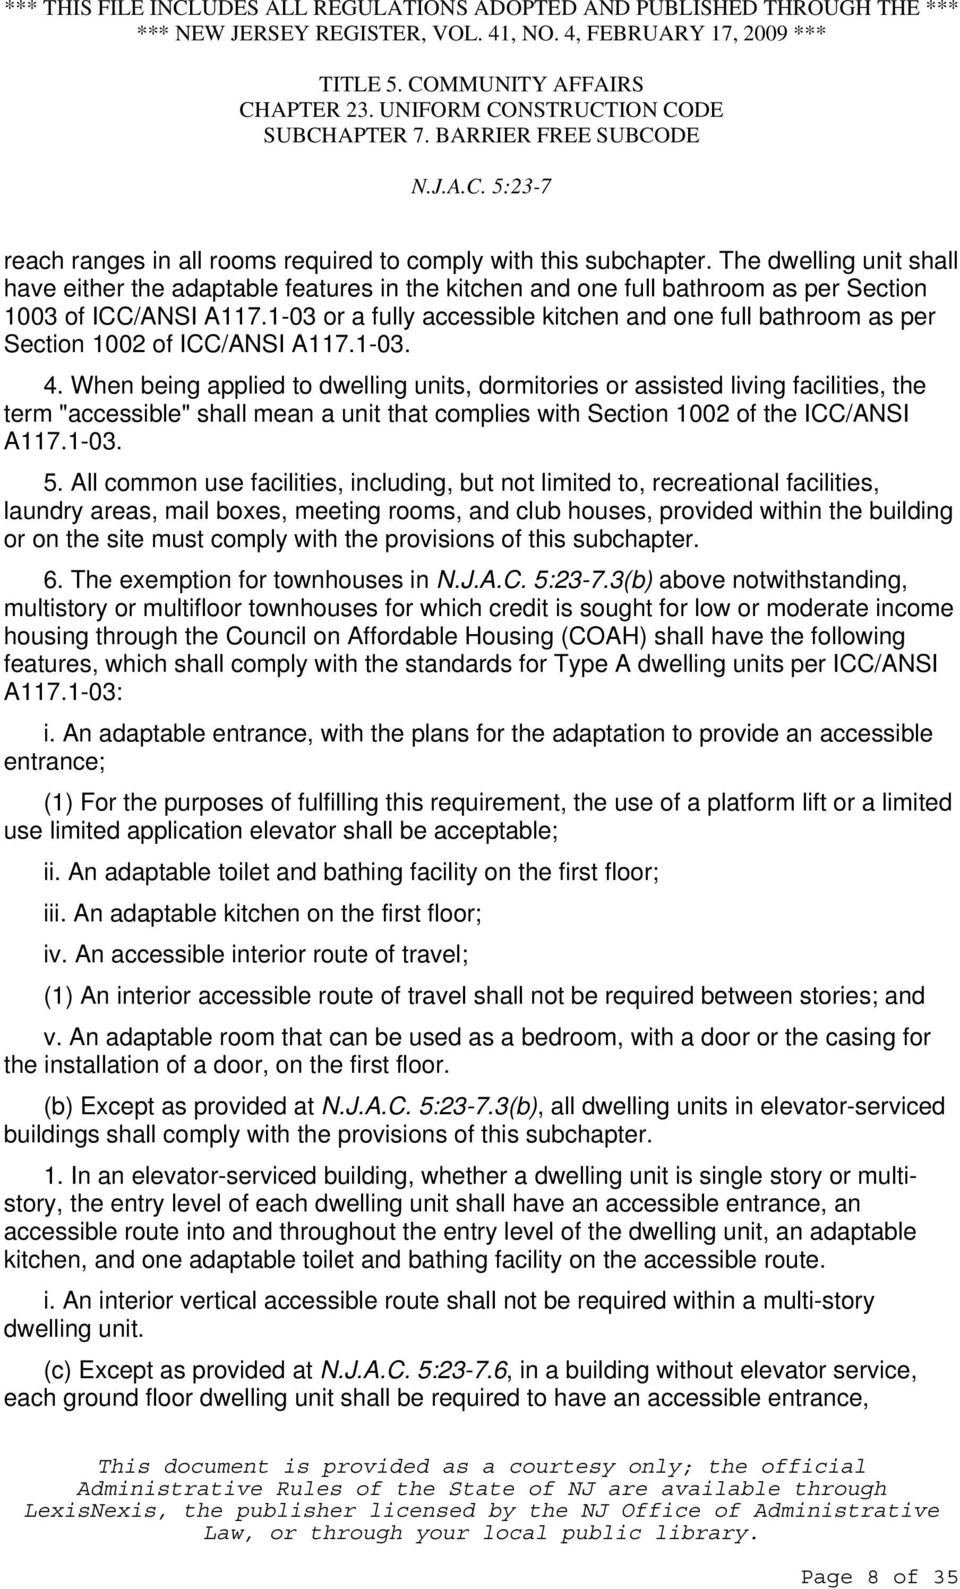 "When being applied to dwelling units, dormitories or assisted living facilities, the term ""accessible"" shall mean a unit that complies with Section 1002 of the ICC/ANSI A117.1-03. 5."